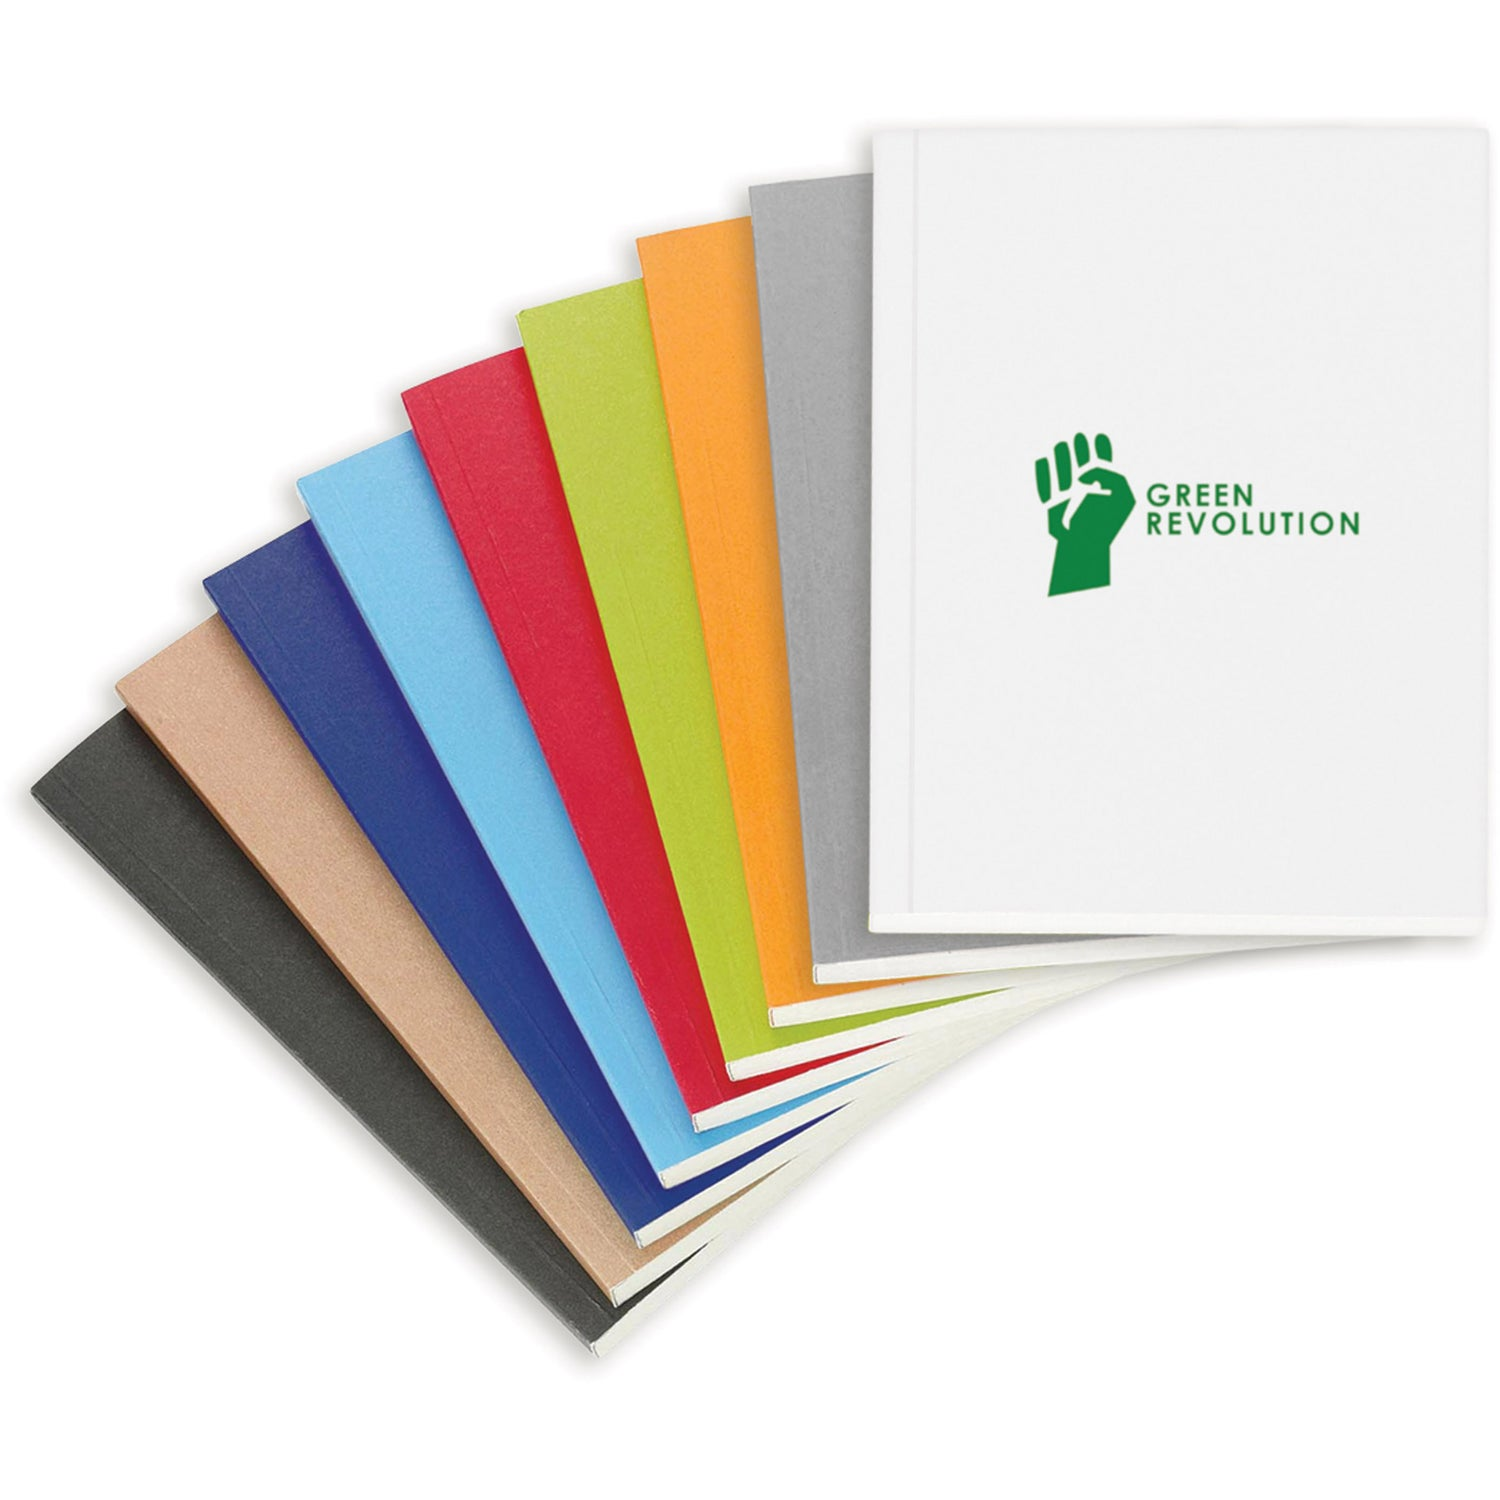 Promotional 6 X 9 Eco Perfect Bound Notebook Colorplays With The Colorplay